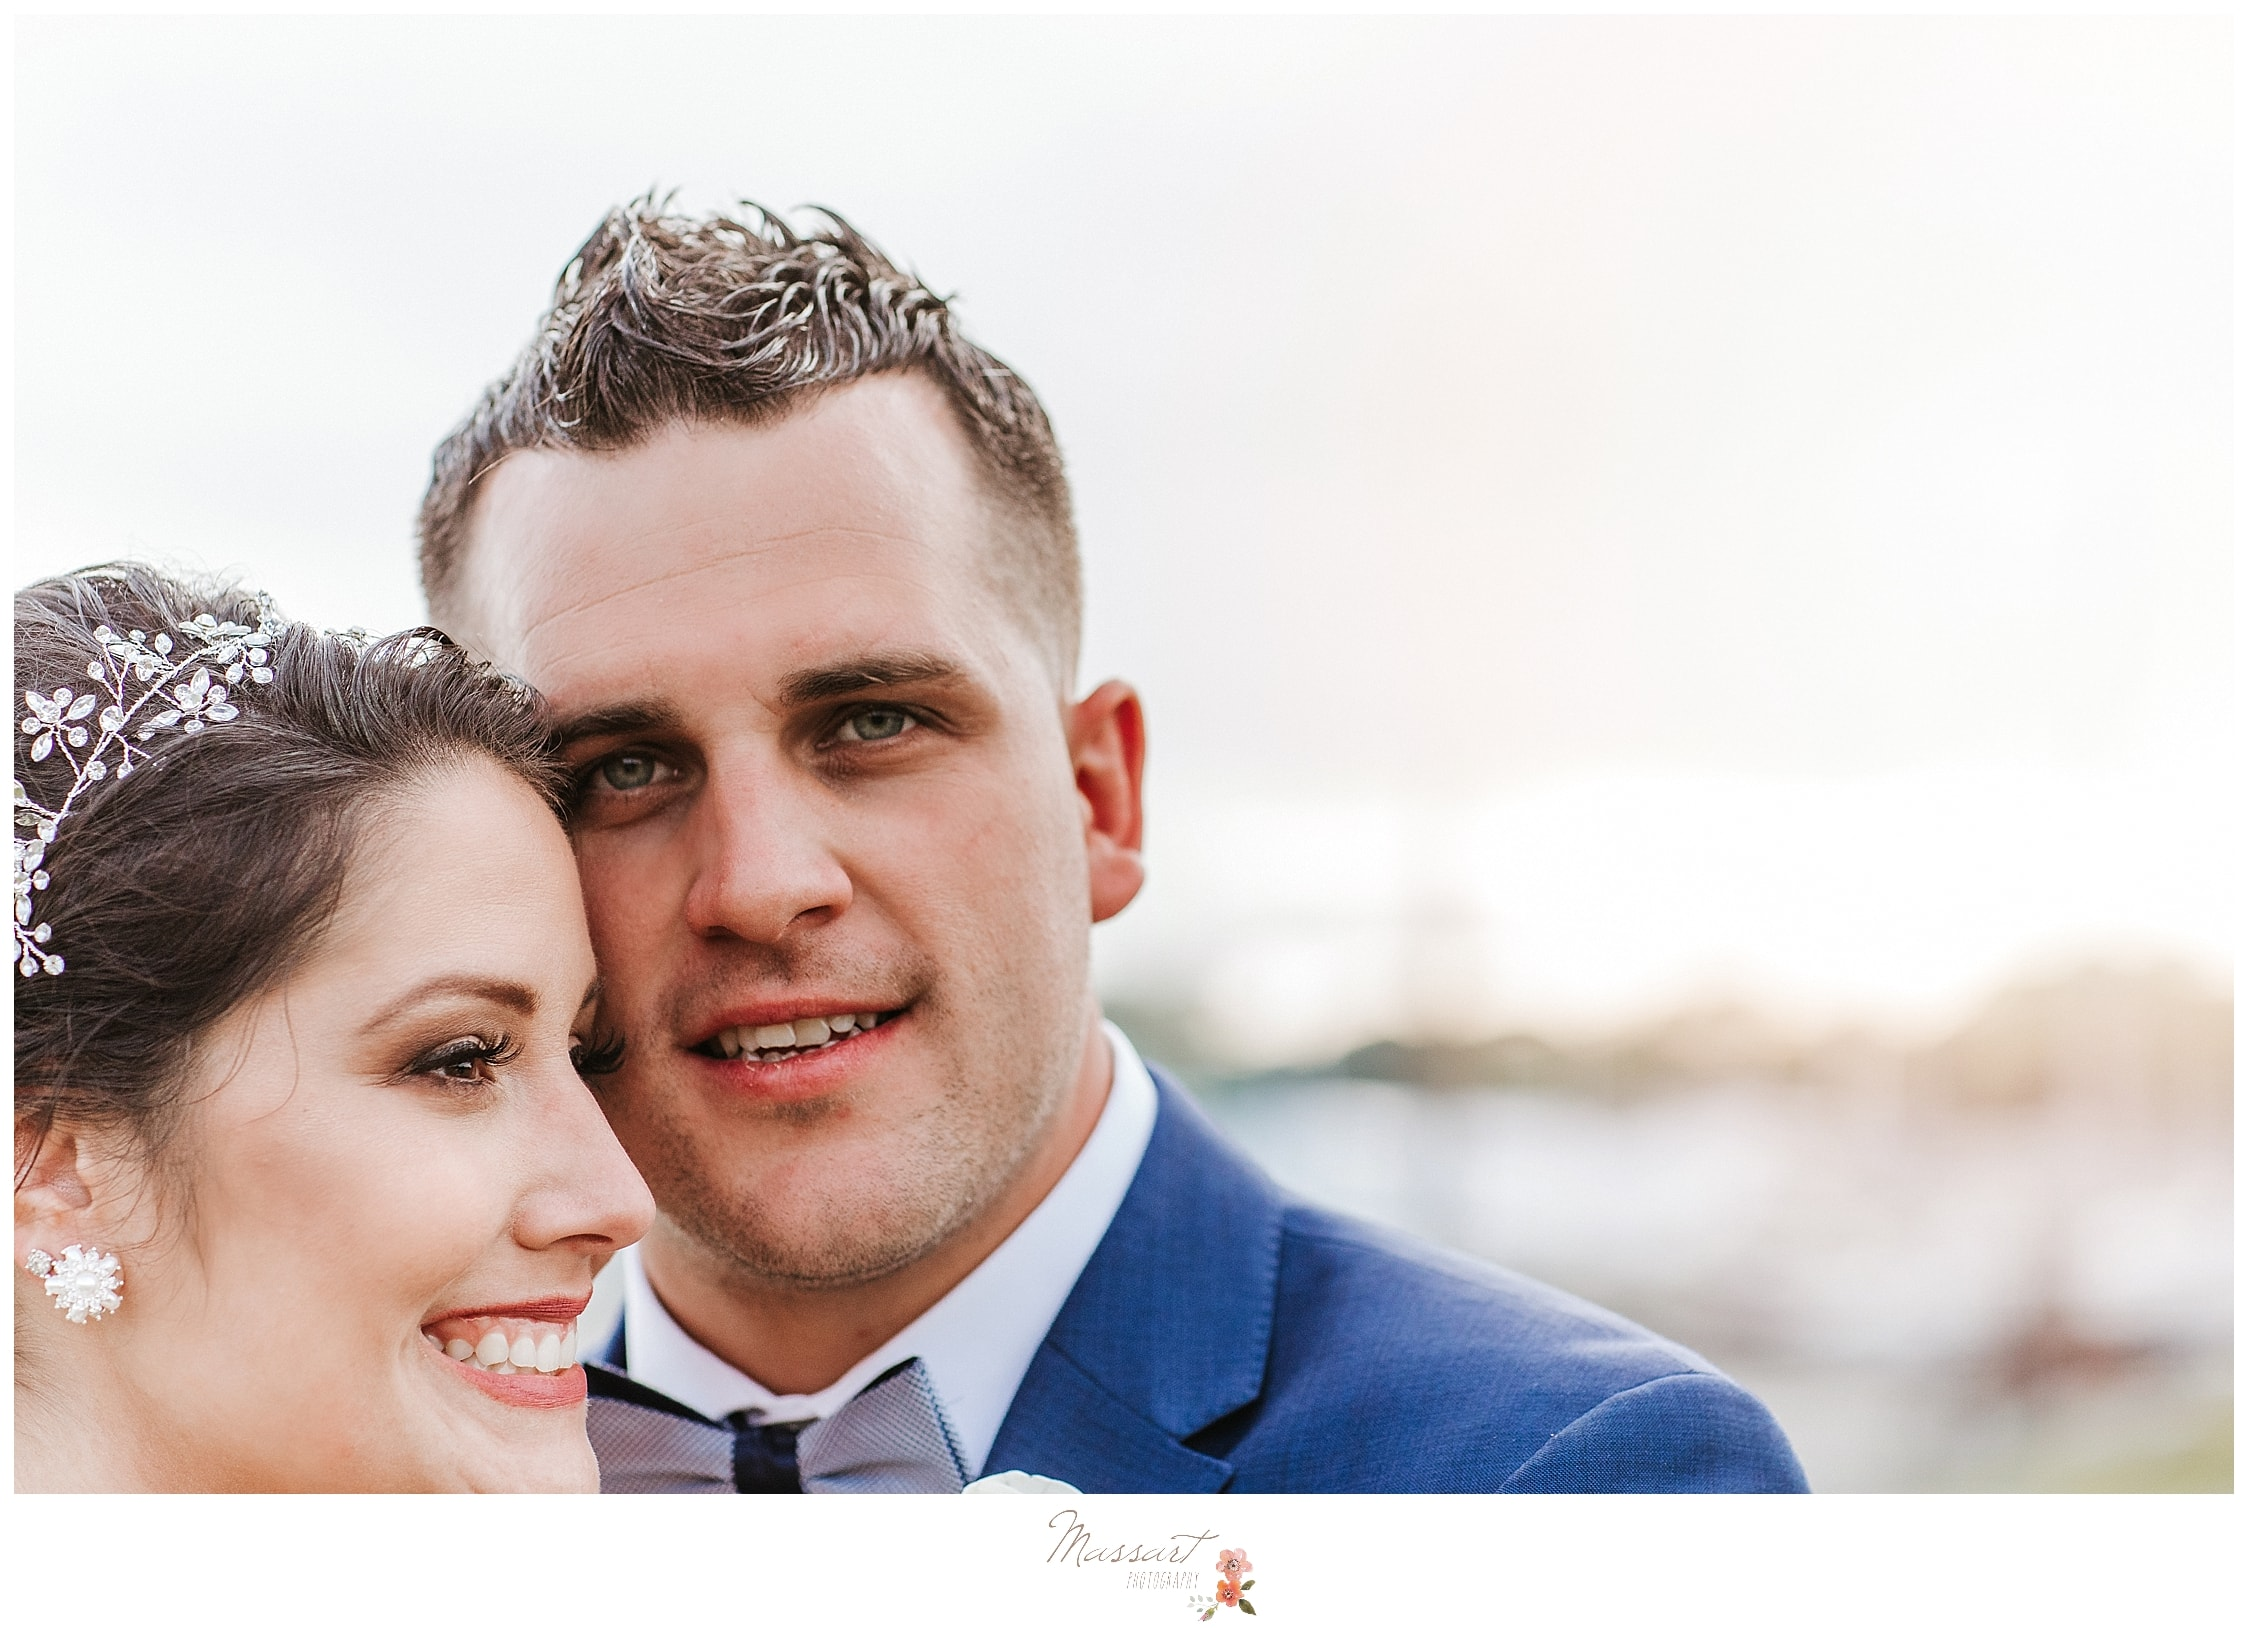 Groom and his new wife at Harbor Lights photographed by Rhode Island wedding photographer Massart Photography.